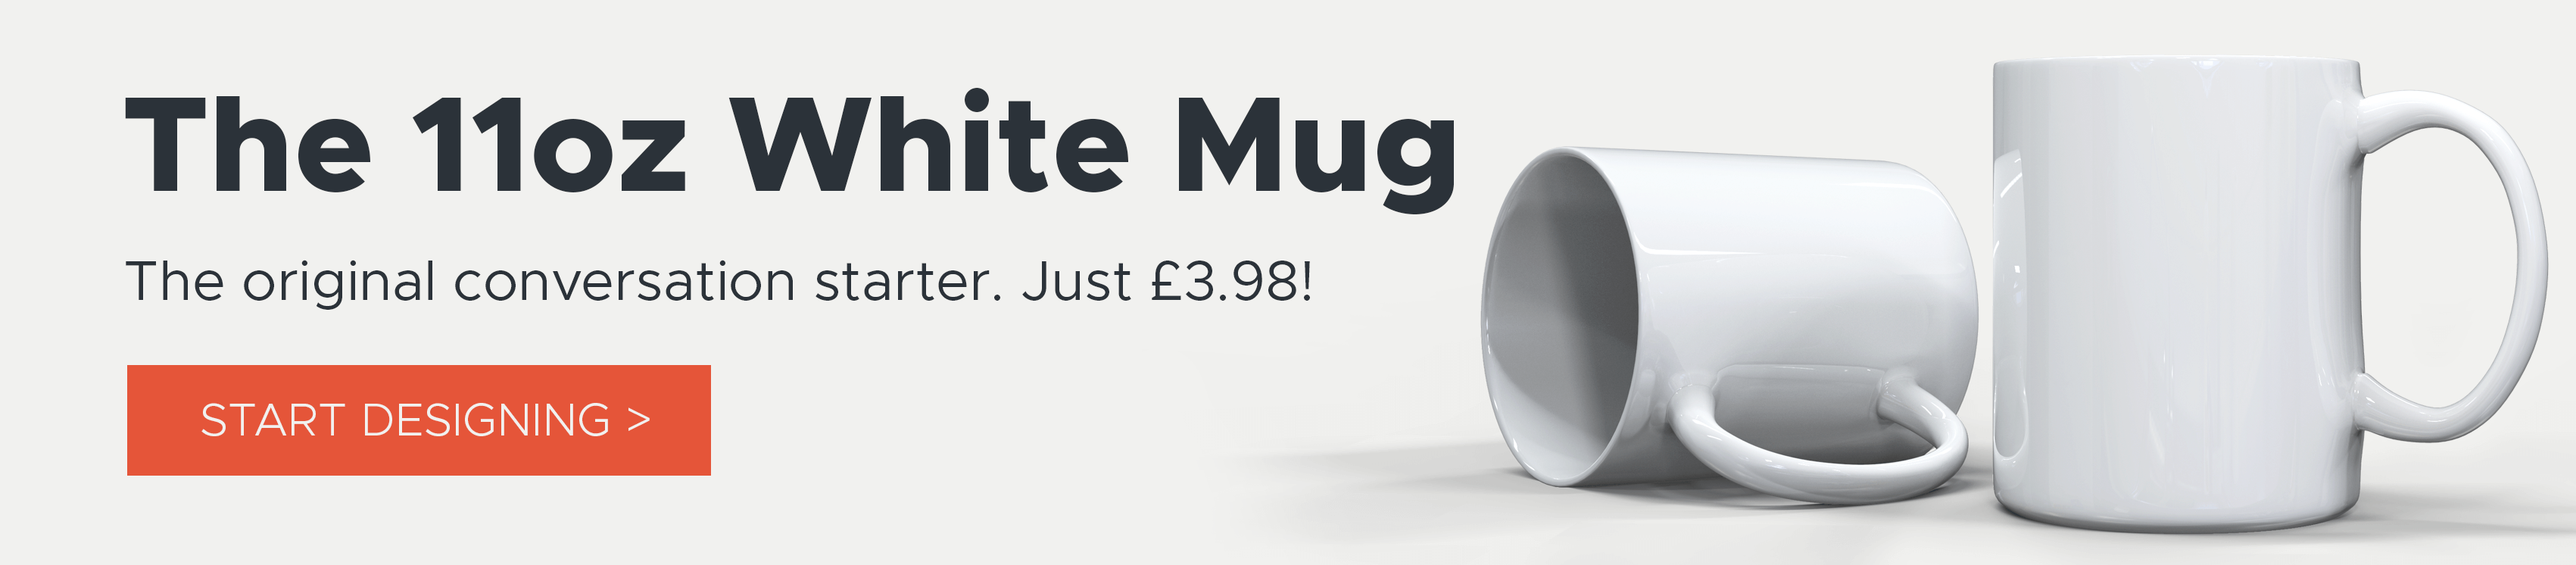 The 11oz Mug by Inkthreadable